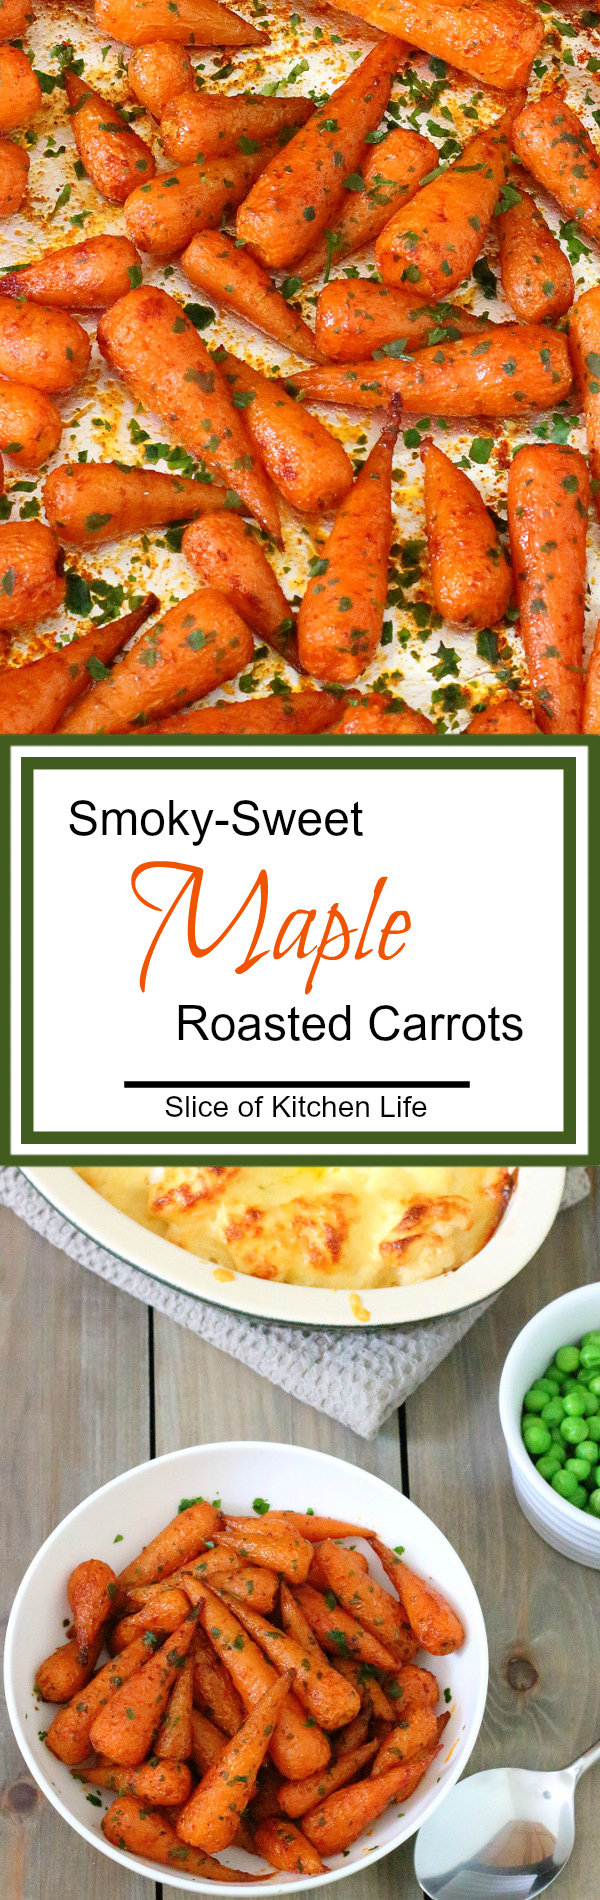 Smoky-Sweet Maple Roasted Carrots Recipe - Transform boring everyday veg into something special - these easy, tasty maple roasted carrots only take a few minutes to prepare! | sliceofkitchenlife.com